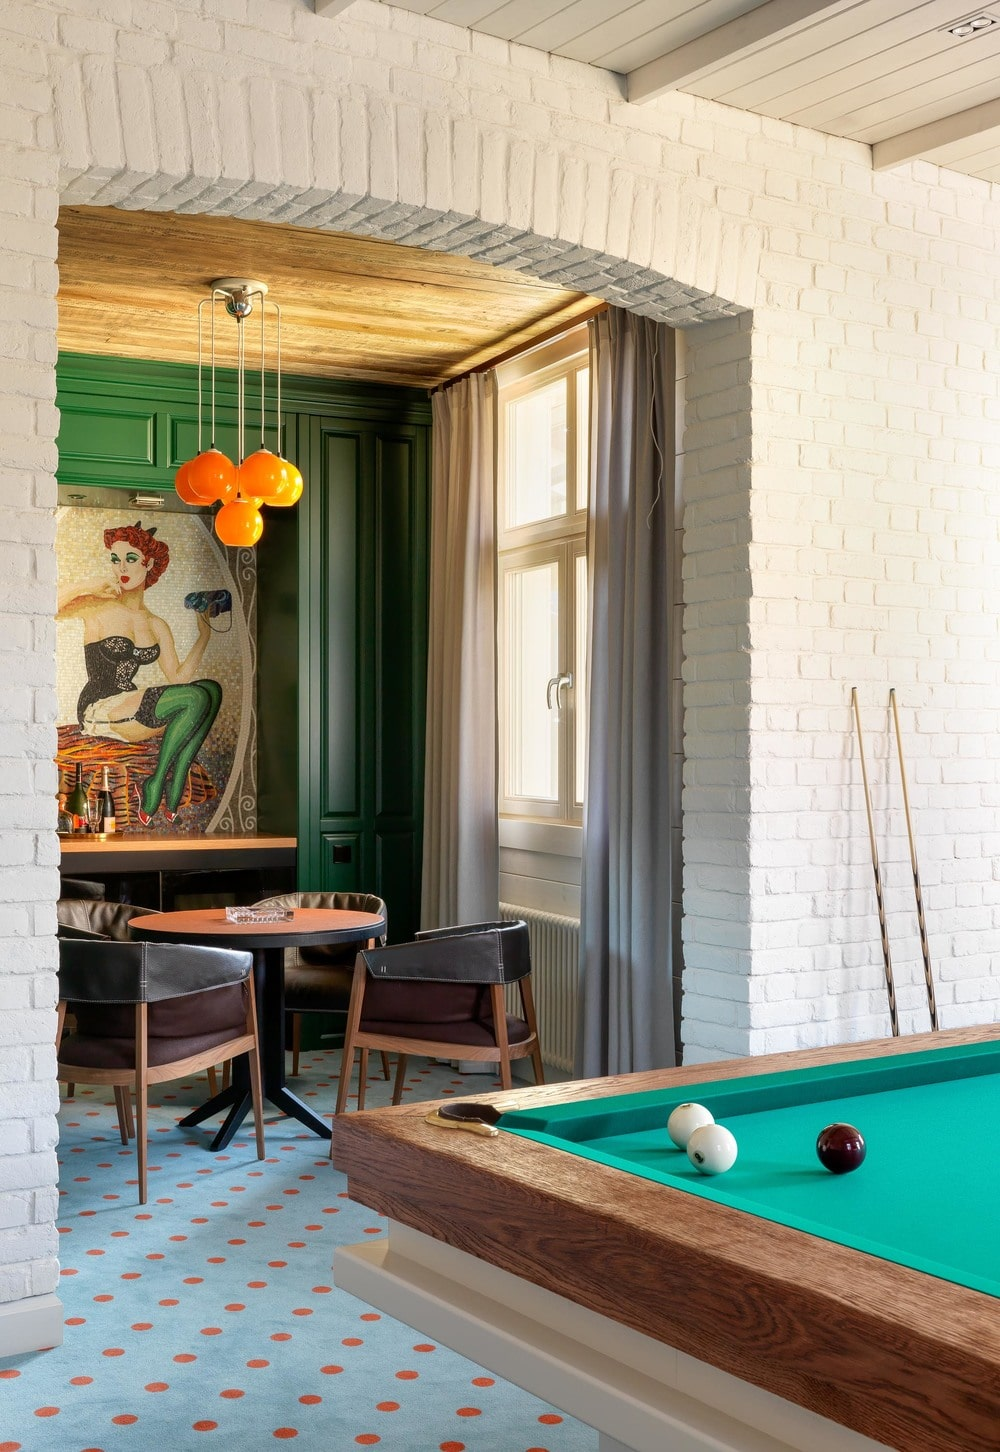 On the other side of the game table is the pool table illuminated by the natural lights coming in through windows. You can also see here the bright orange pendant lights hanging over the game table.